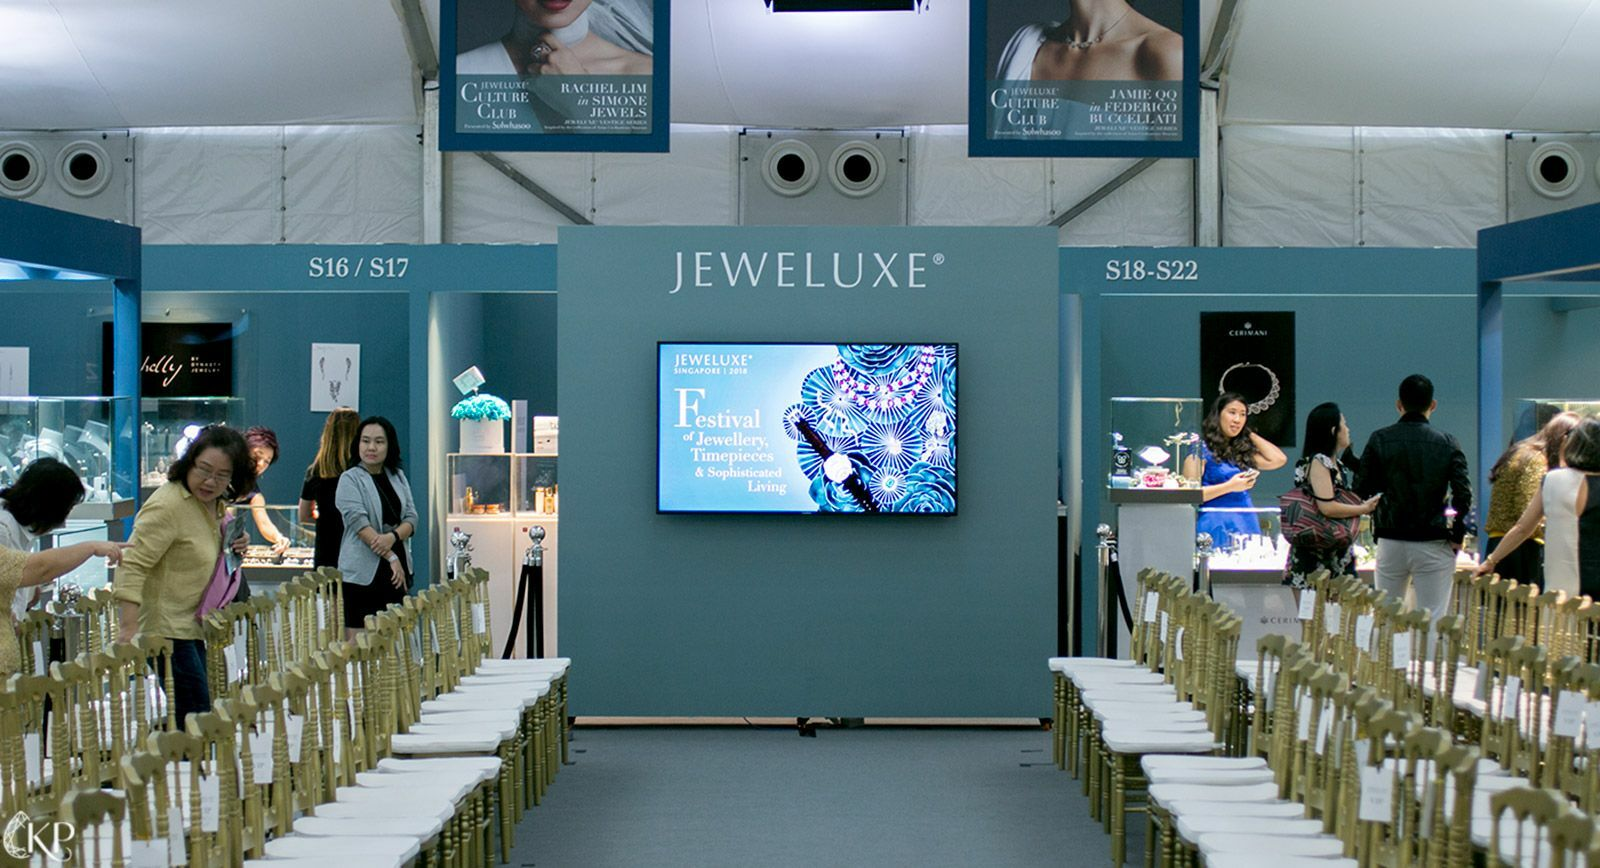 Jeweluxe 2018 exhibition in Singapore